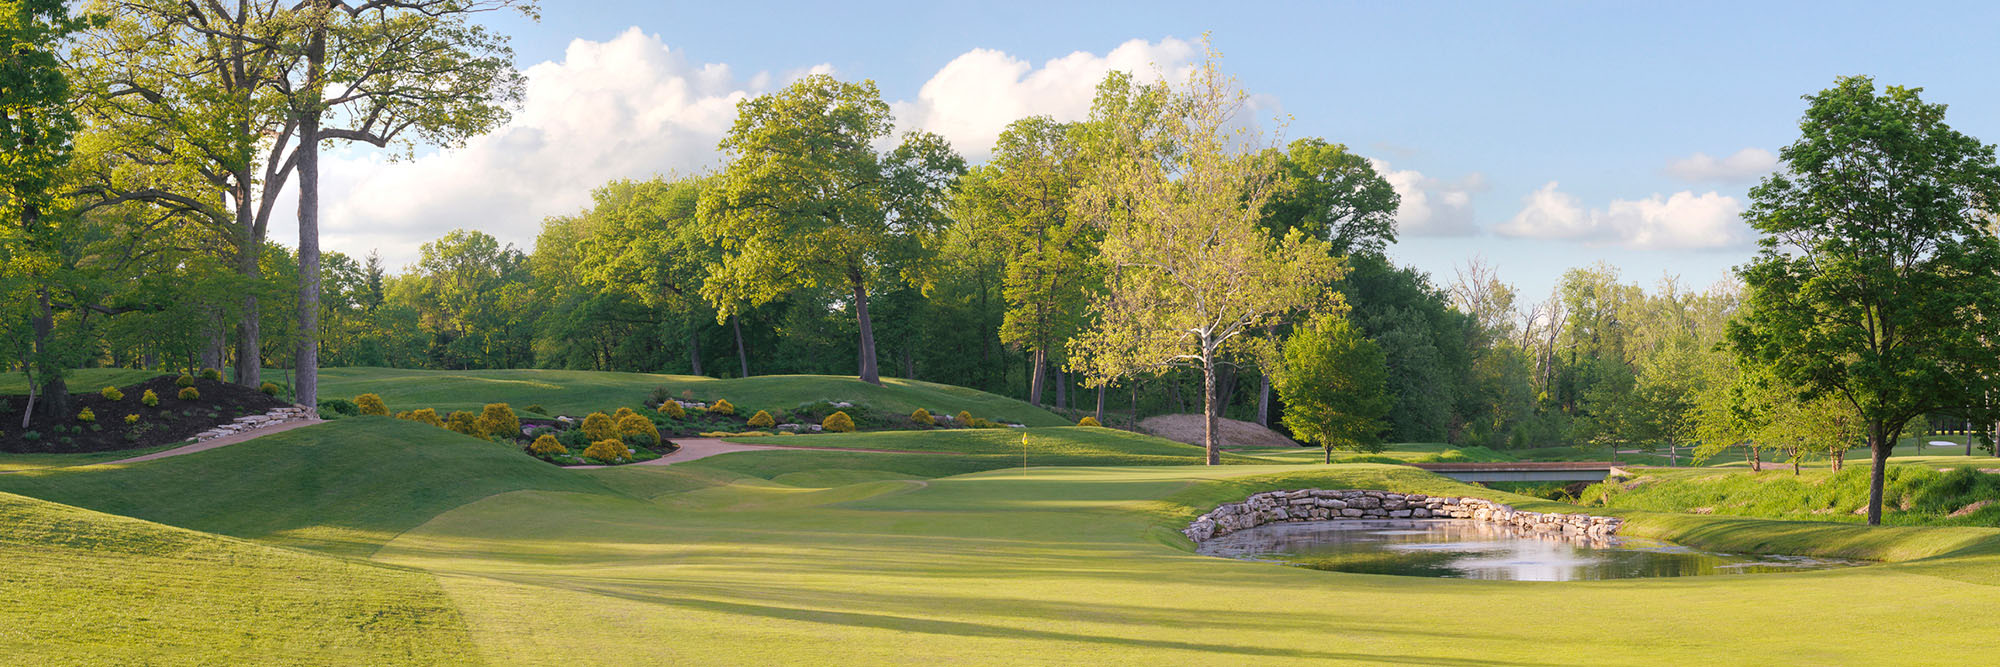 Golf Course Image - Bellerive No. 11